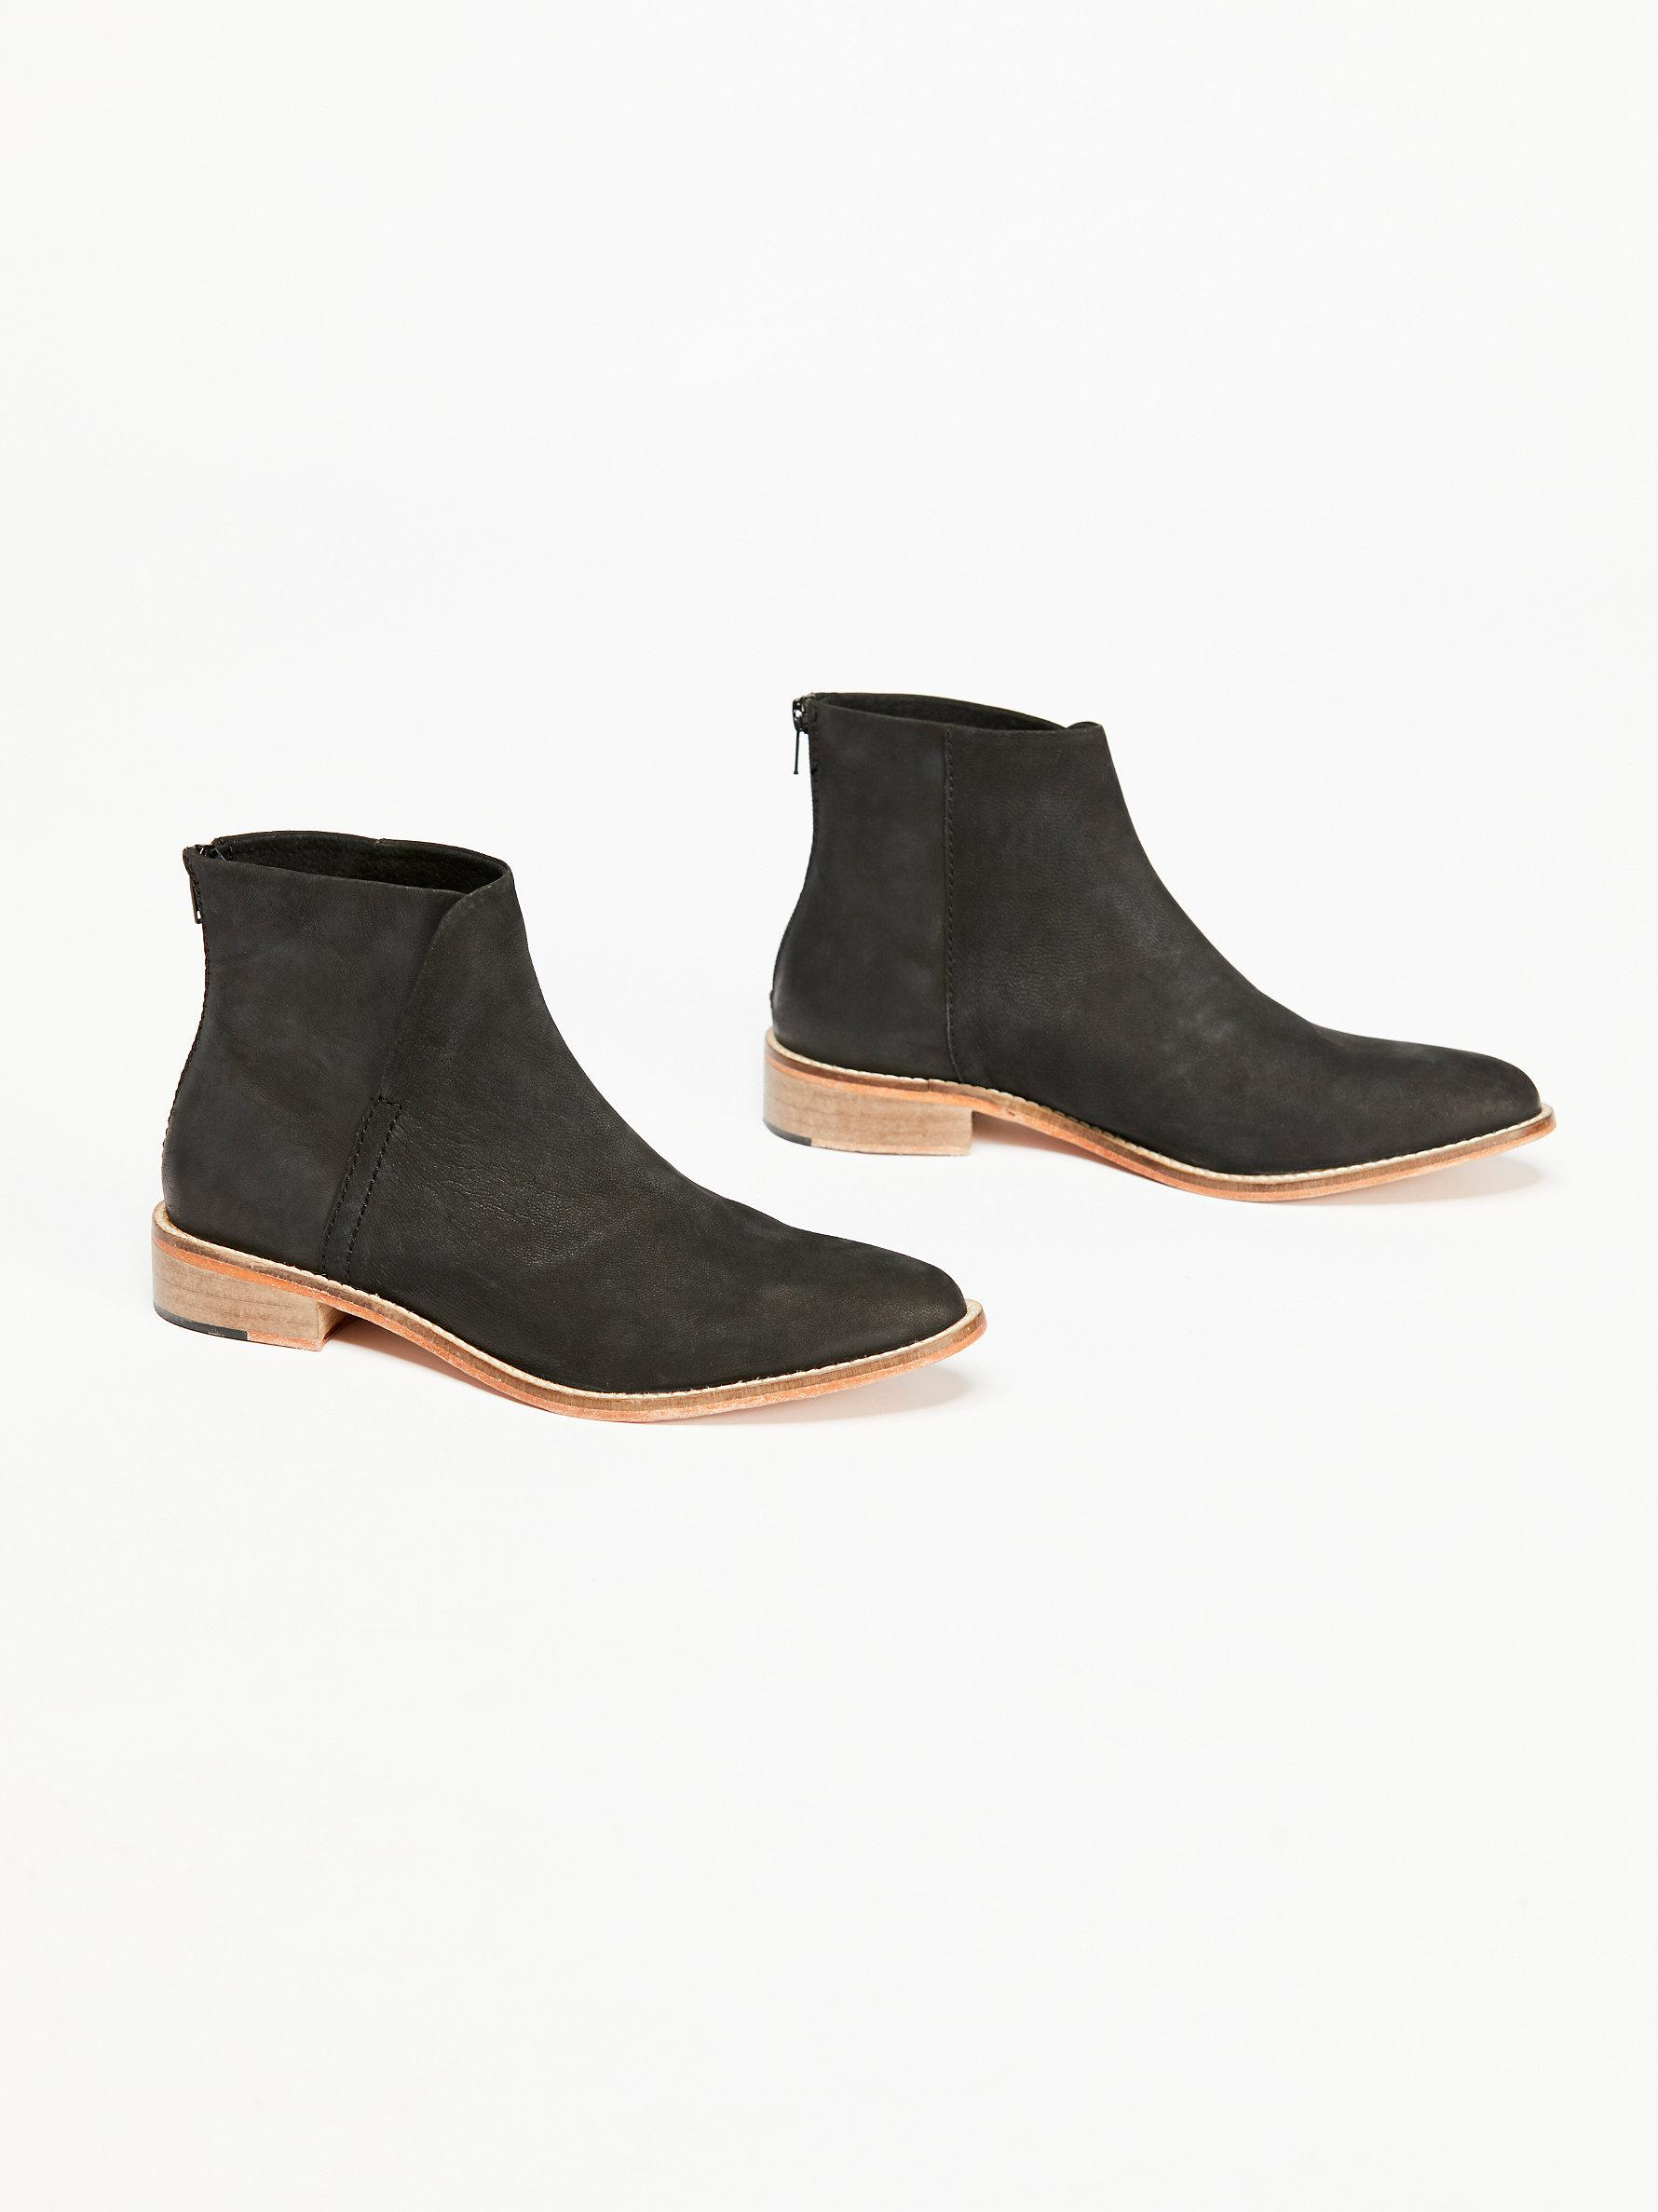 sale really authentic cheap online Century Flat Boot pre order buy cheap for cheap buy cheap shopping online Op6JvUdt